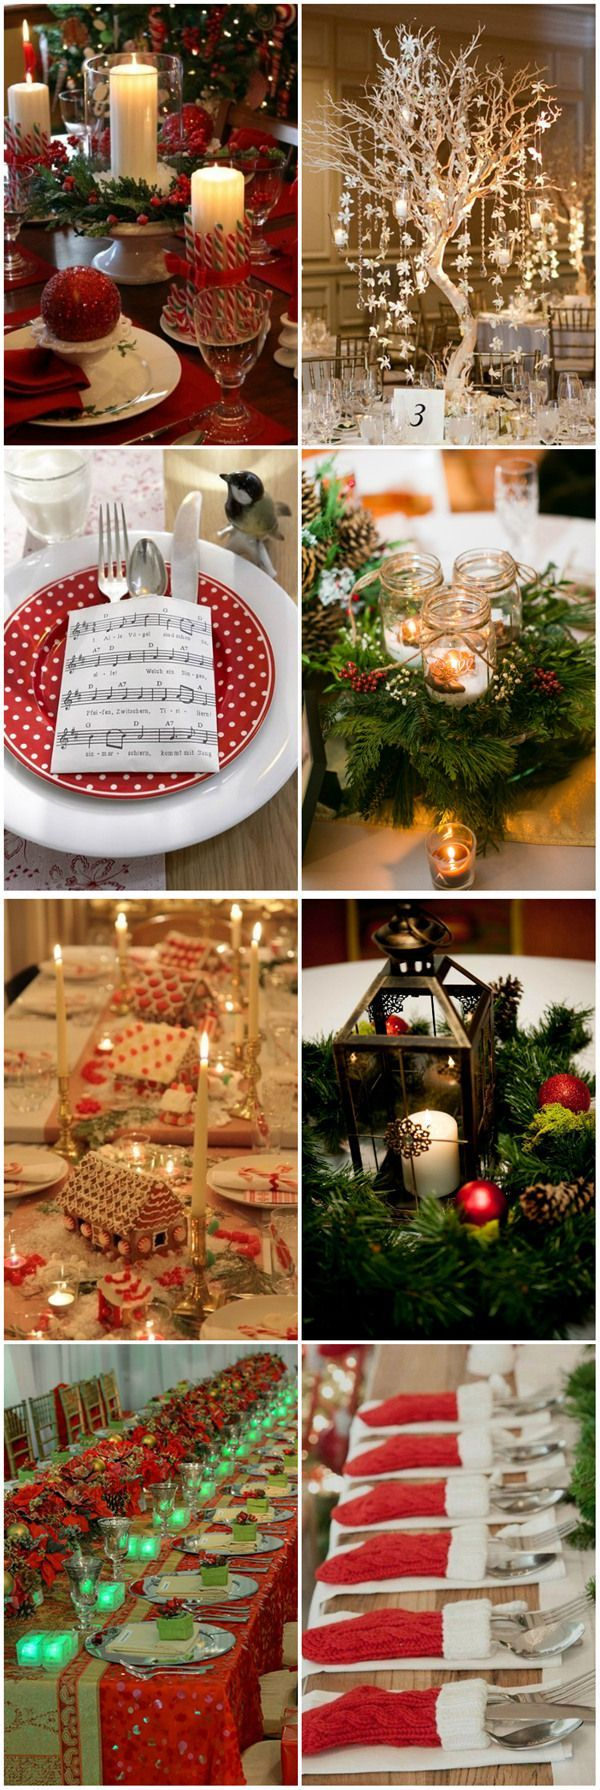 Diy christmas party decorations - Top 25 Christmas Wedding Ideas Of The Year 2015